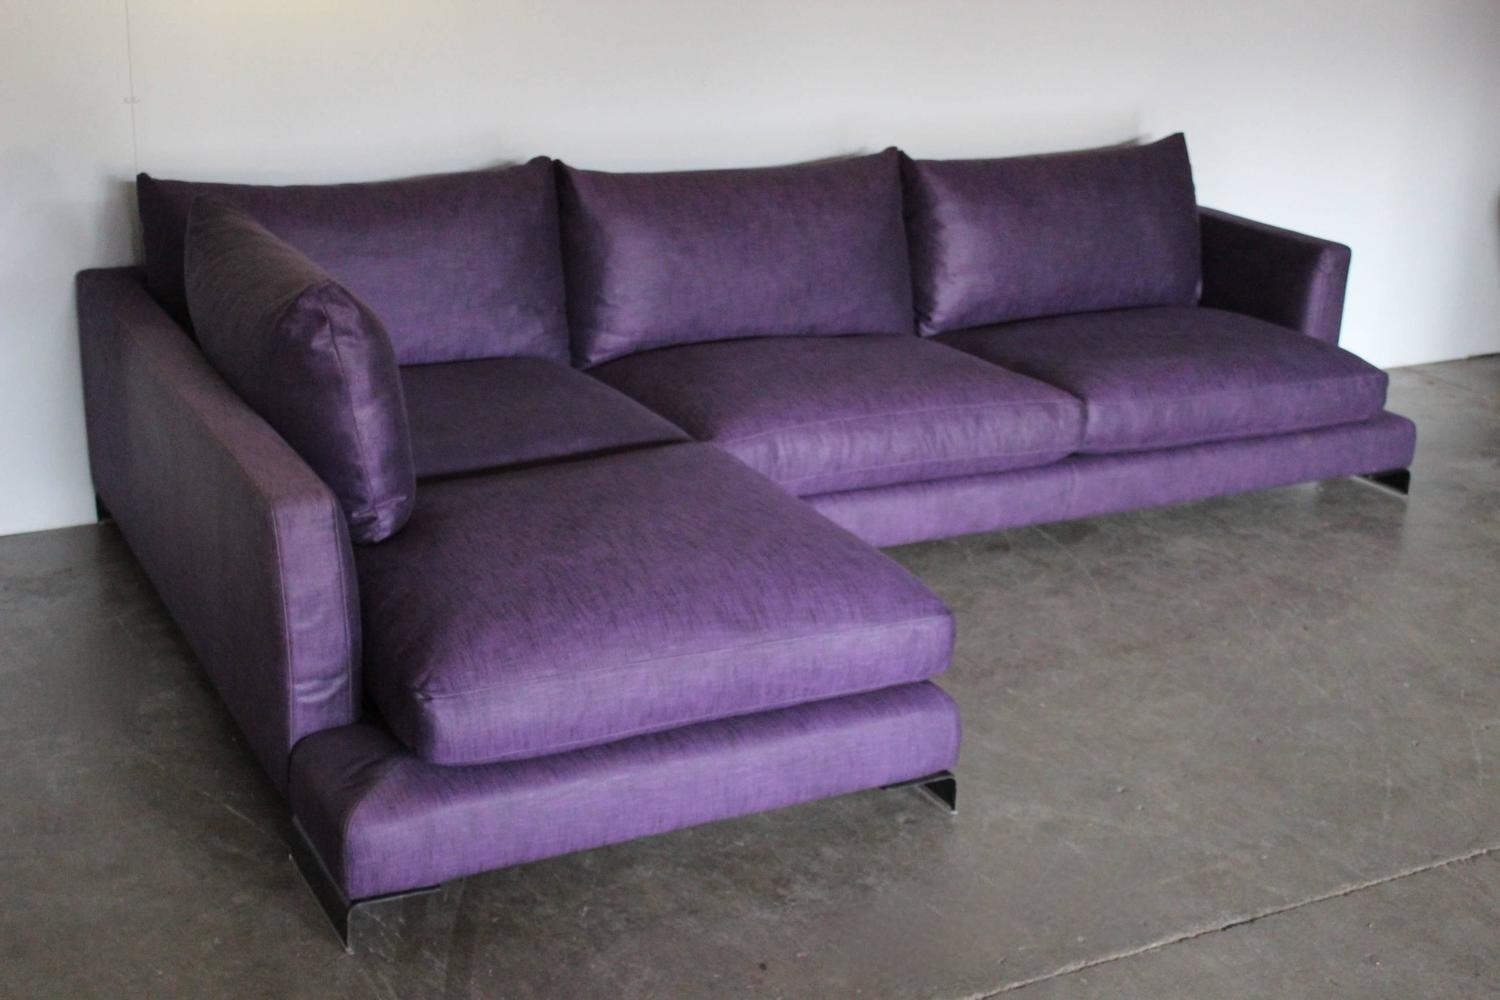 Flexform long island l shape sofa in purple and black for Deep couches for sale